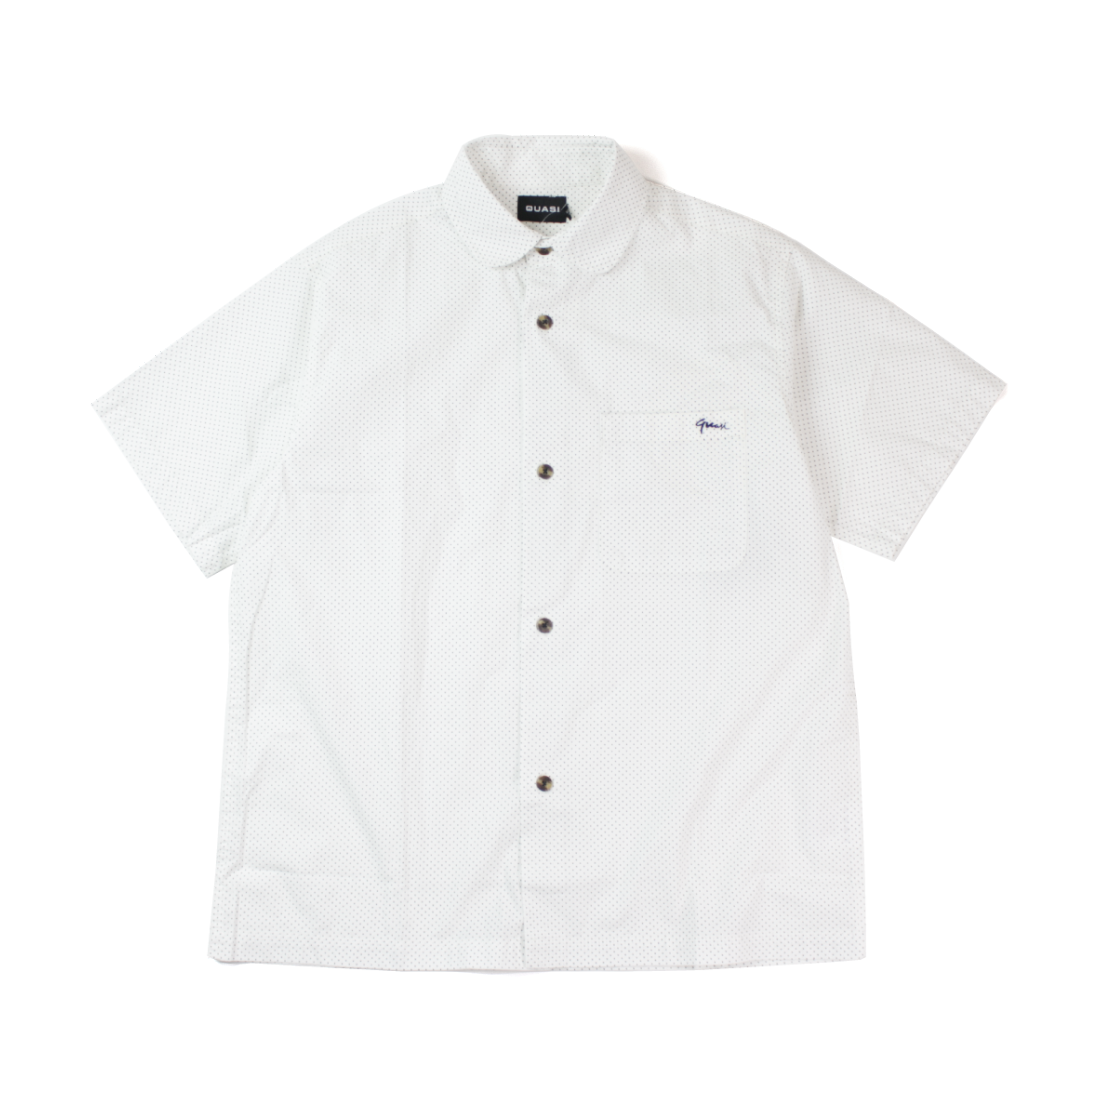 【Quasi】Pdot SS Button Up